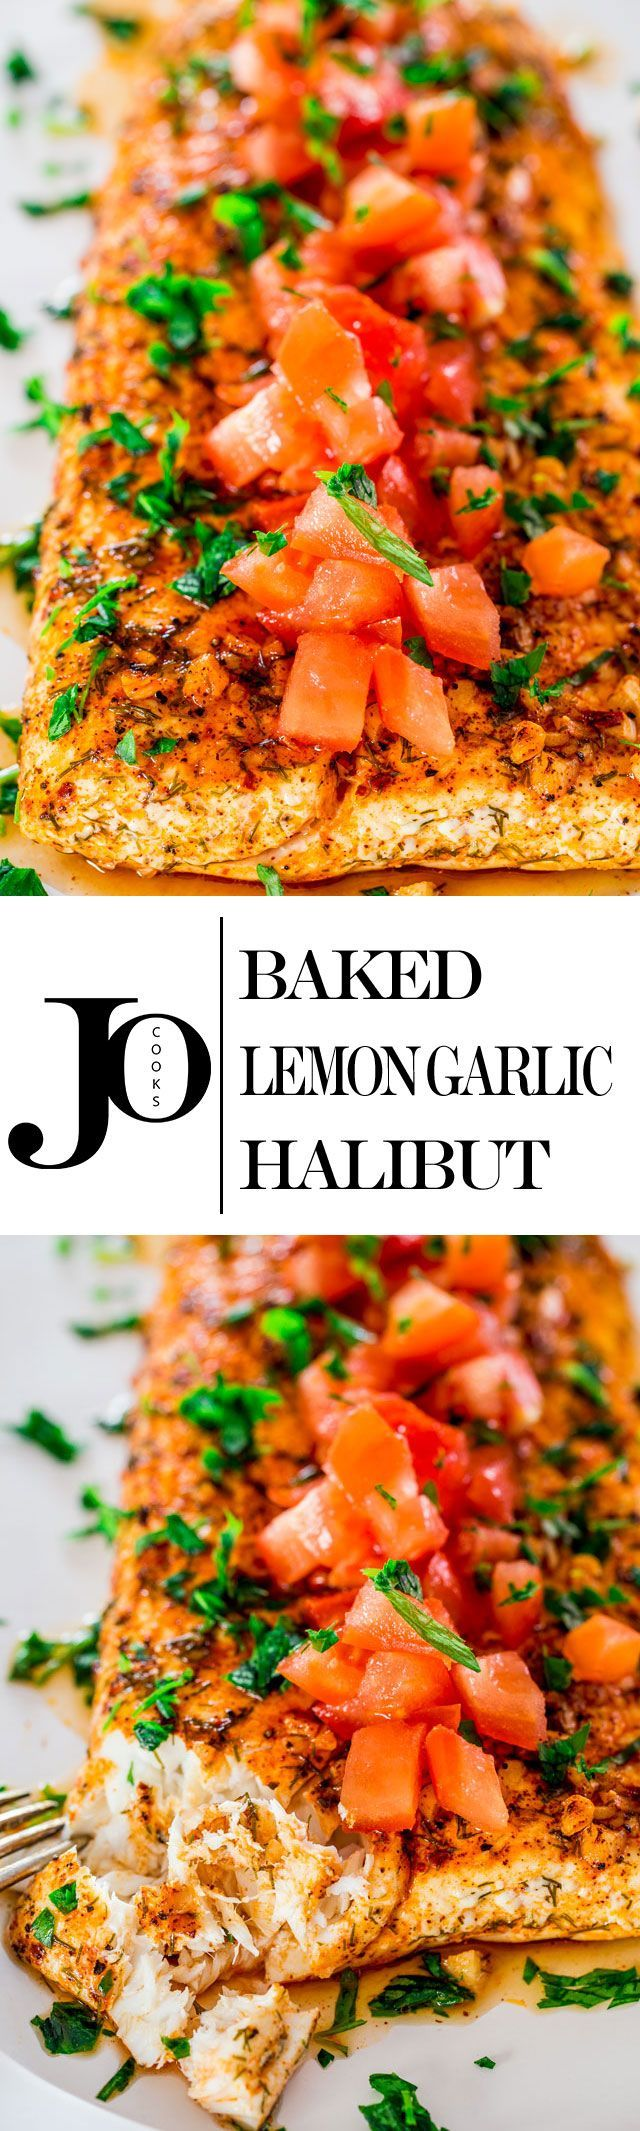 ... of halibut fish baked to perfection in a lemon and garlic marinade